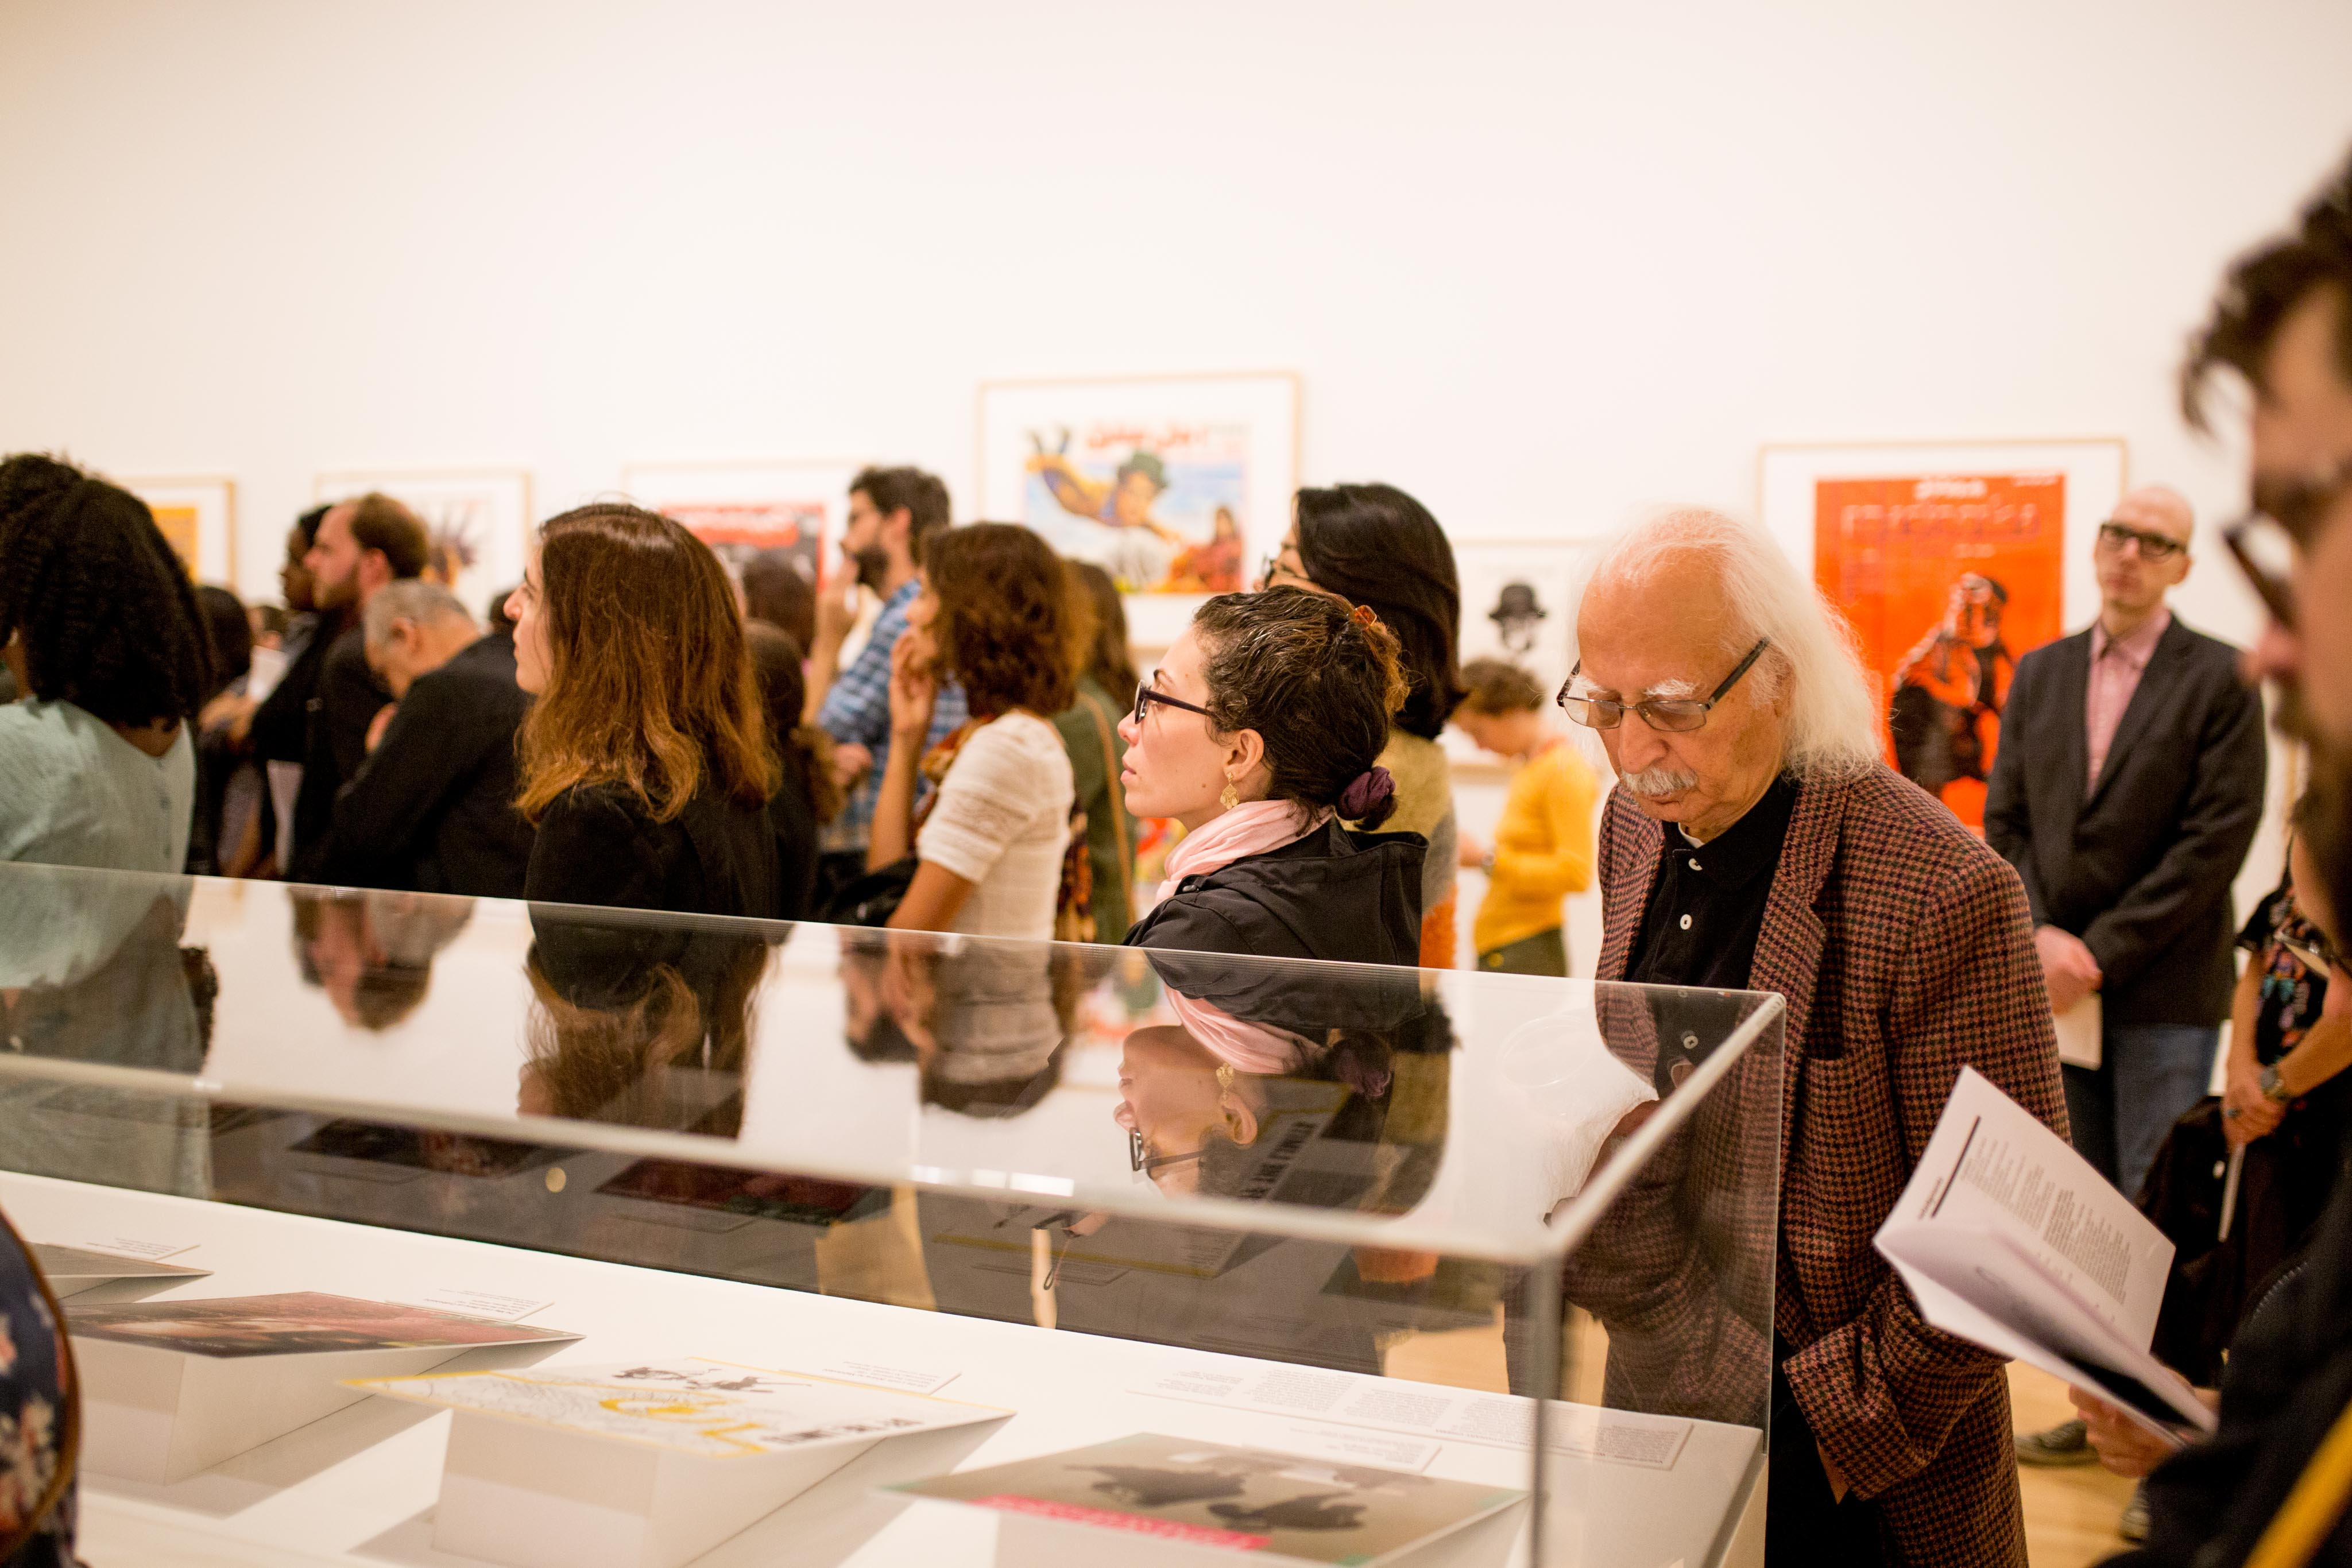 Attendees at the opening for the Salaam Cinema exhibition. Image courtesy of the Block Museum of Art.